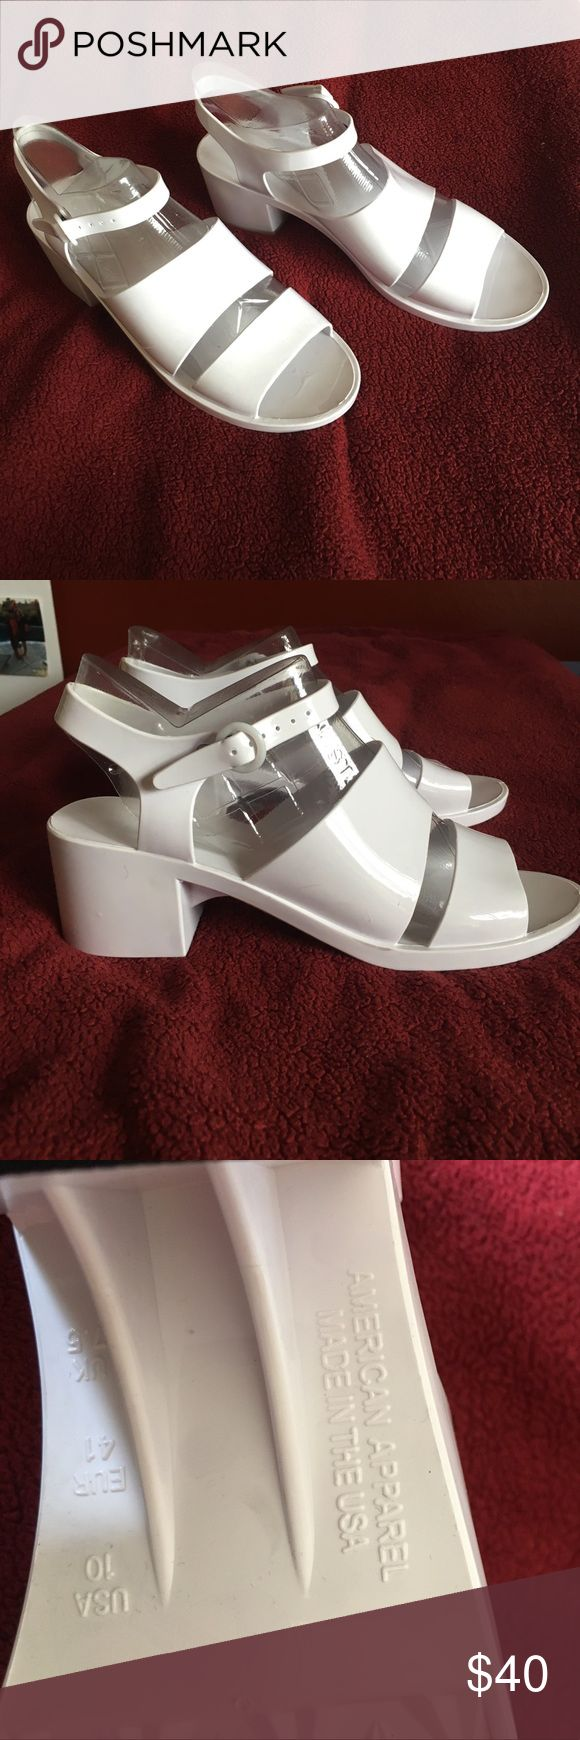 American Apparel Classic Jelly Heel White Size 10 white jelly heels. Never worn American Apparel Shoes Sandals